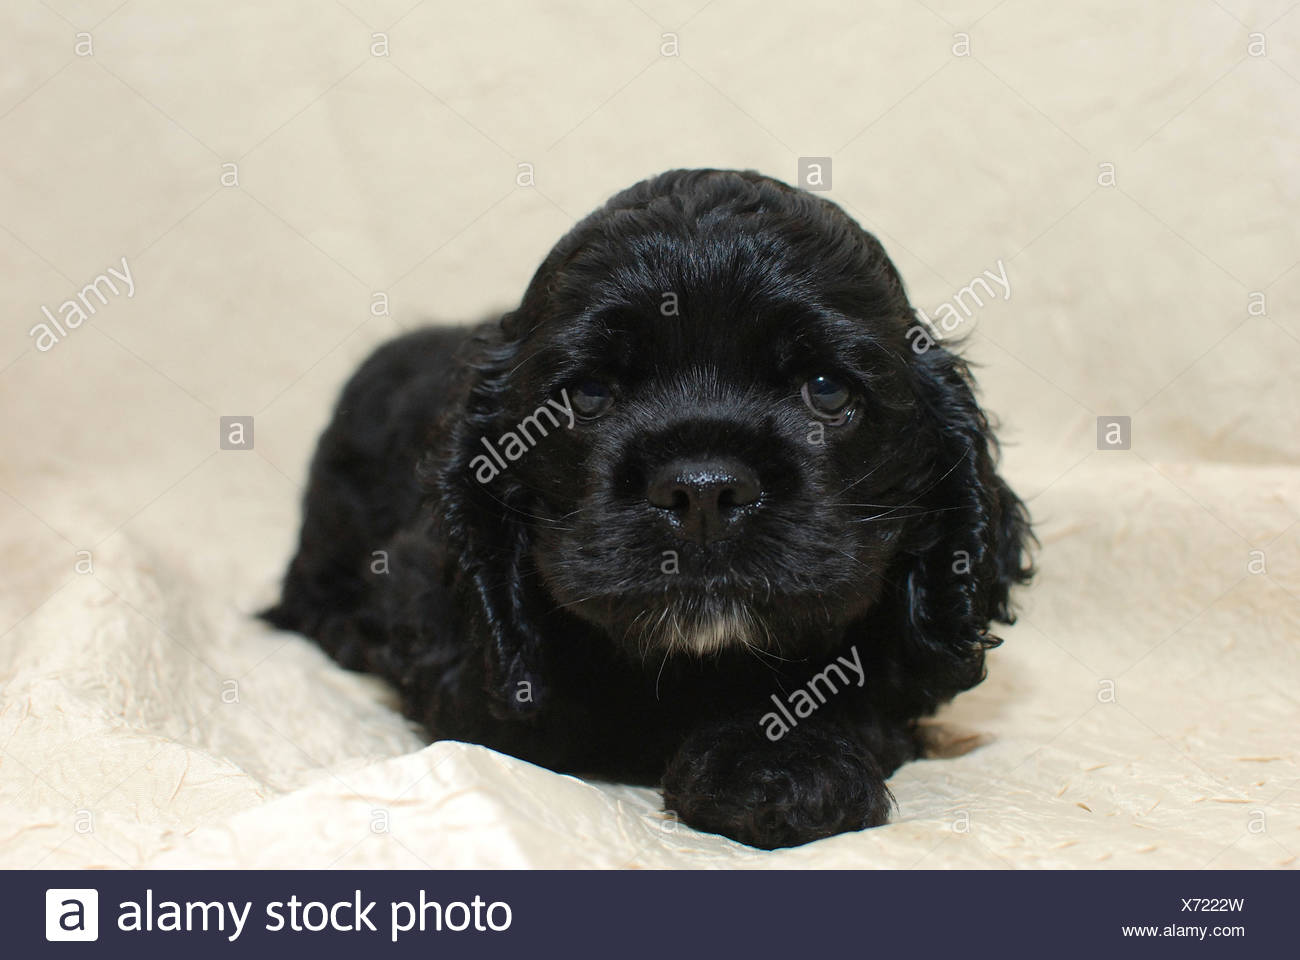 Black Cocker Spaniel Puppy High Resolution Stock Photography And Images Alamy